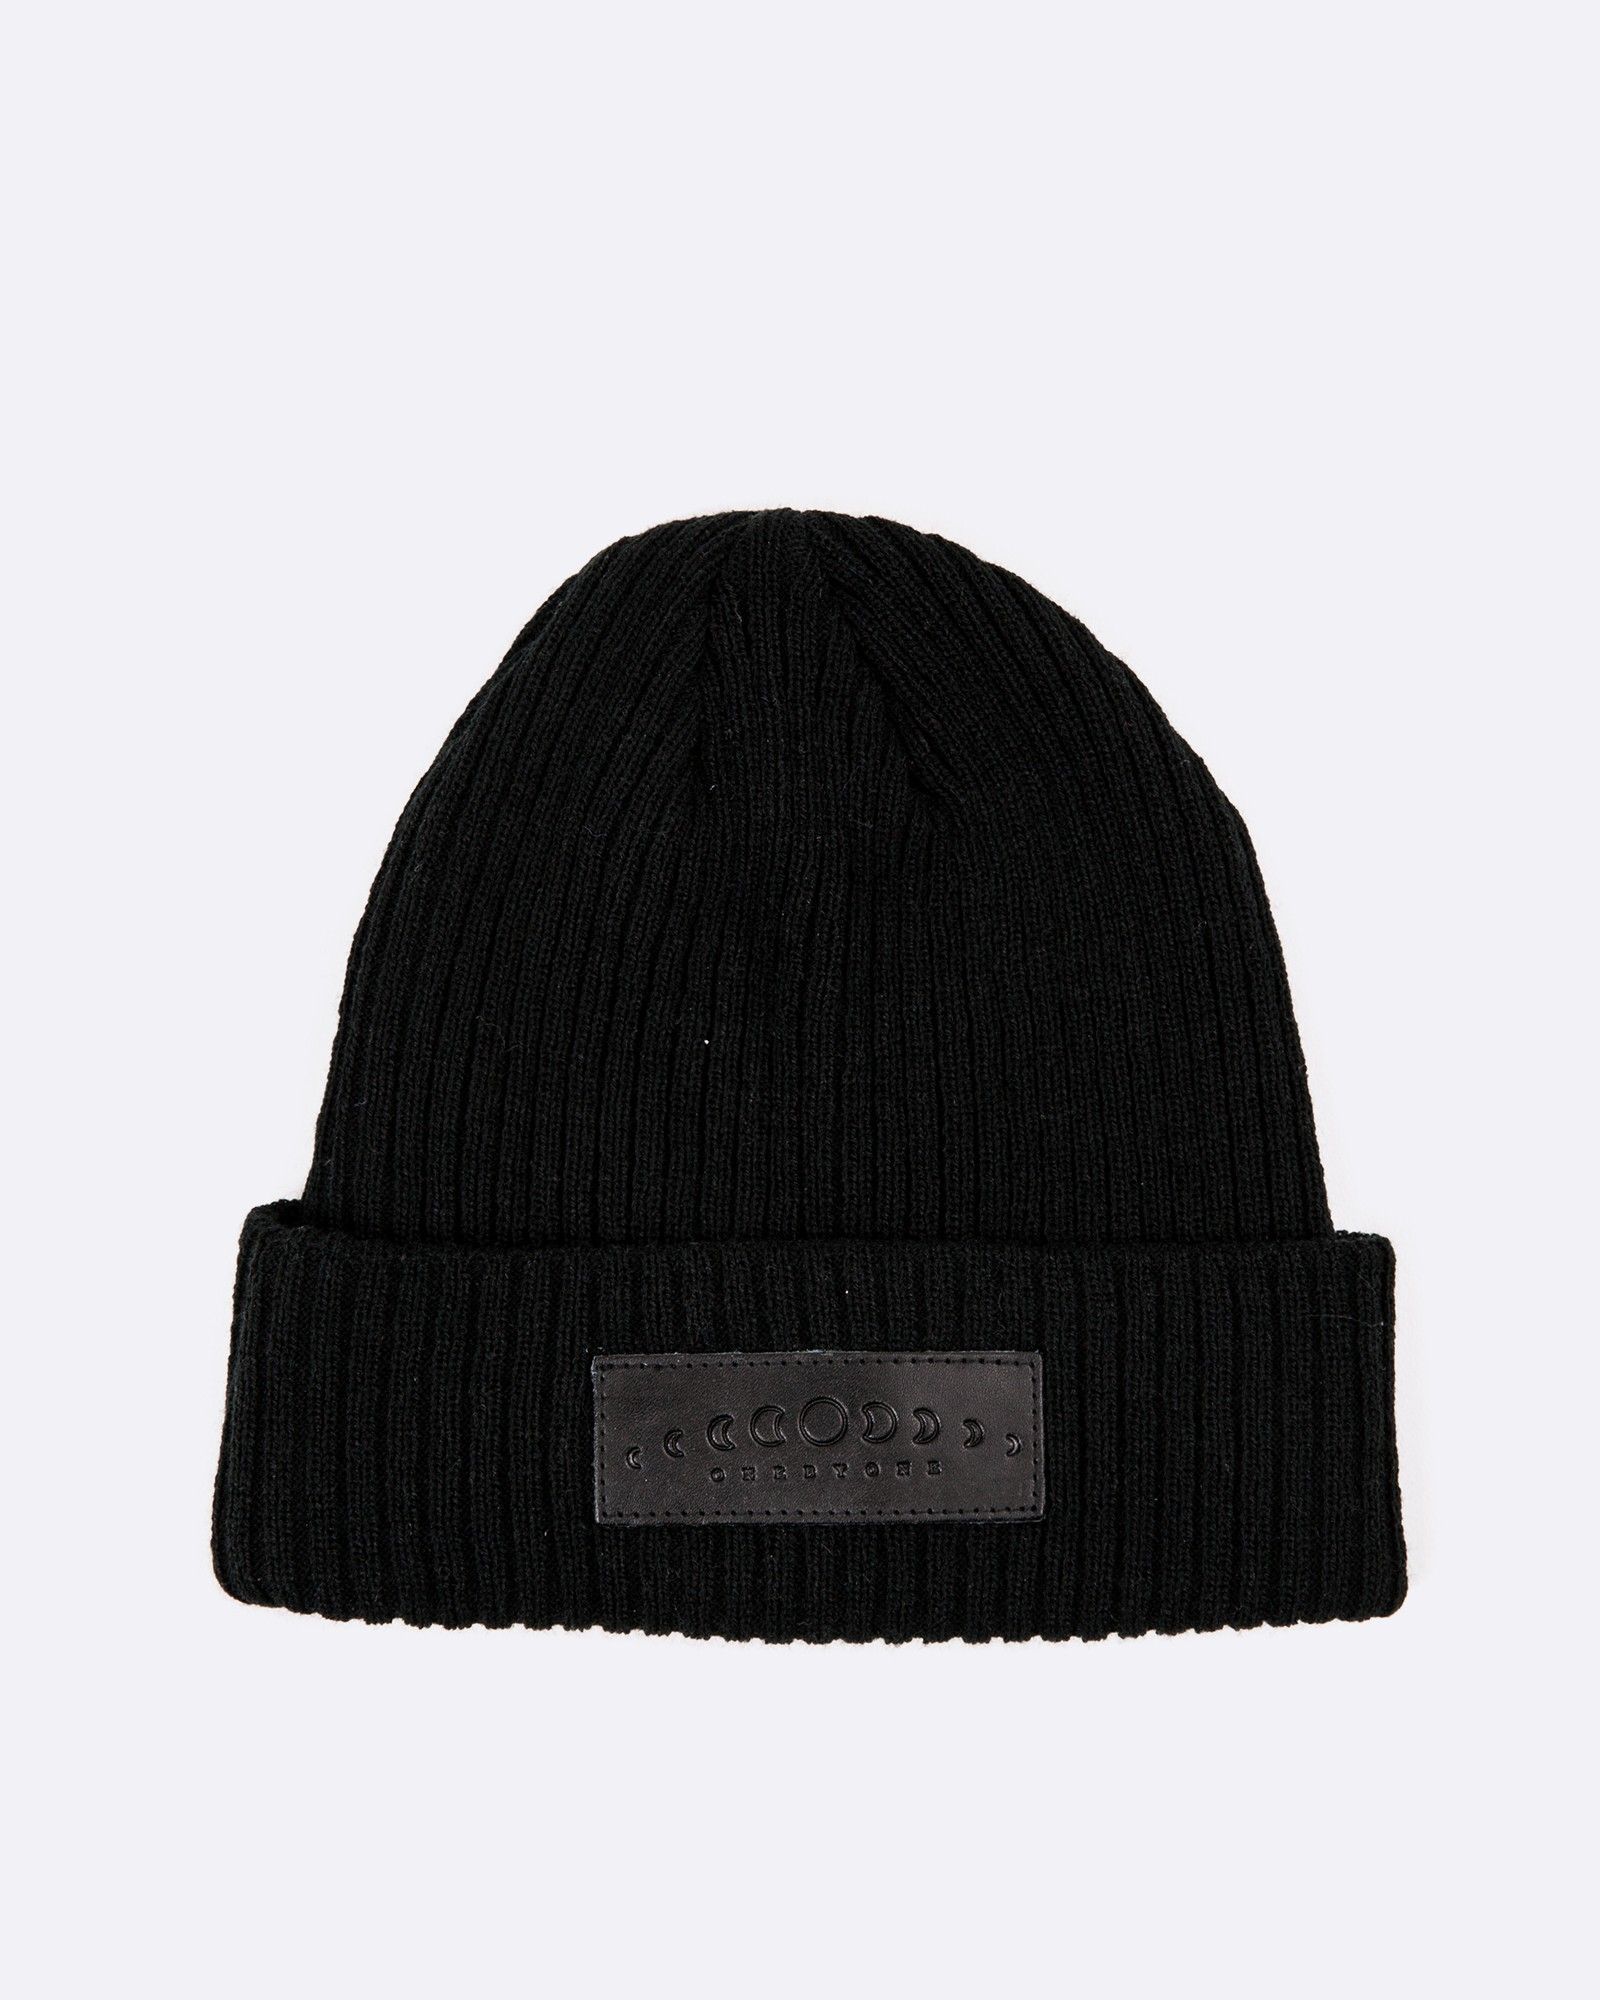 NEW MOON BLACK BEANIE